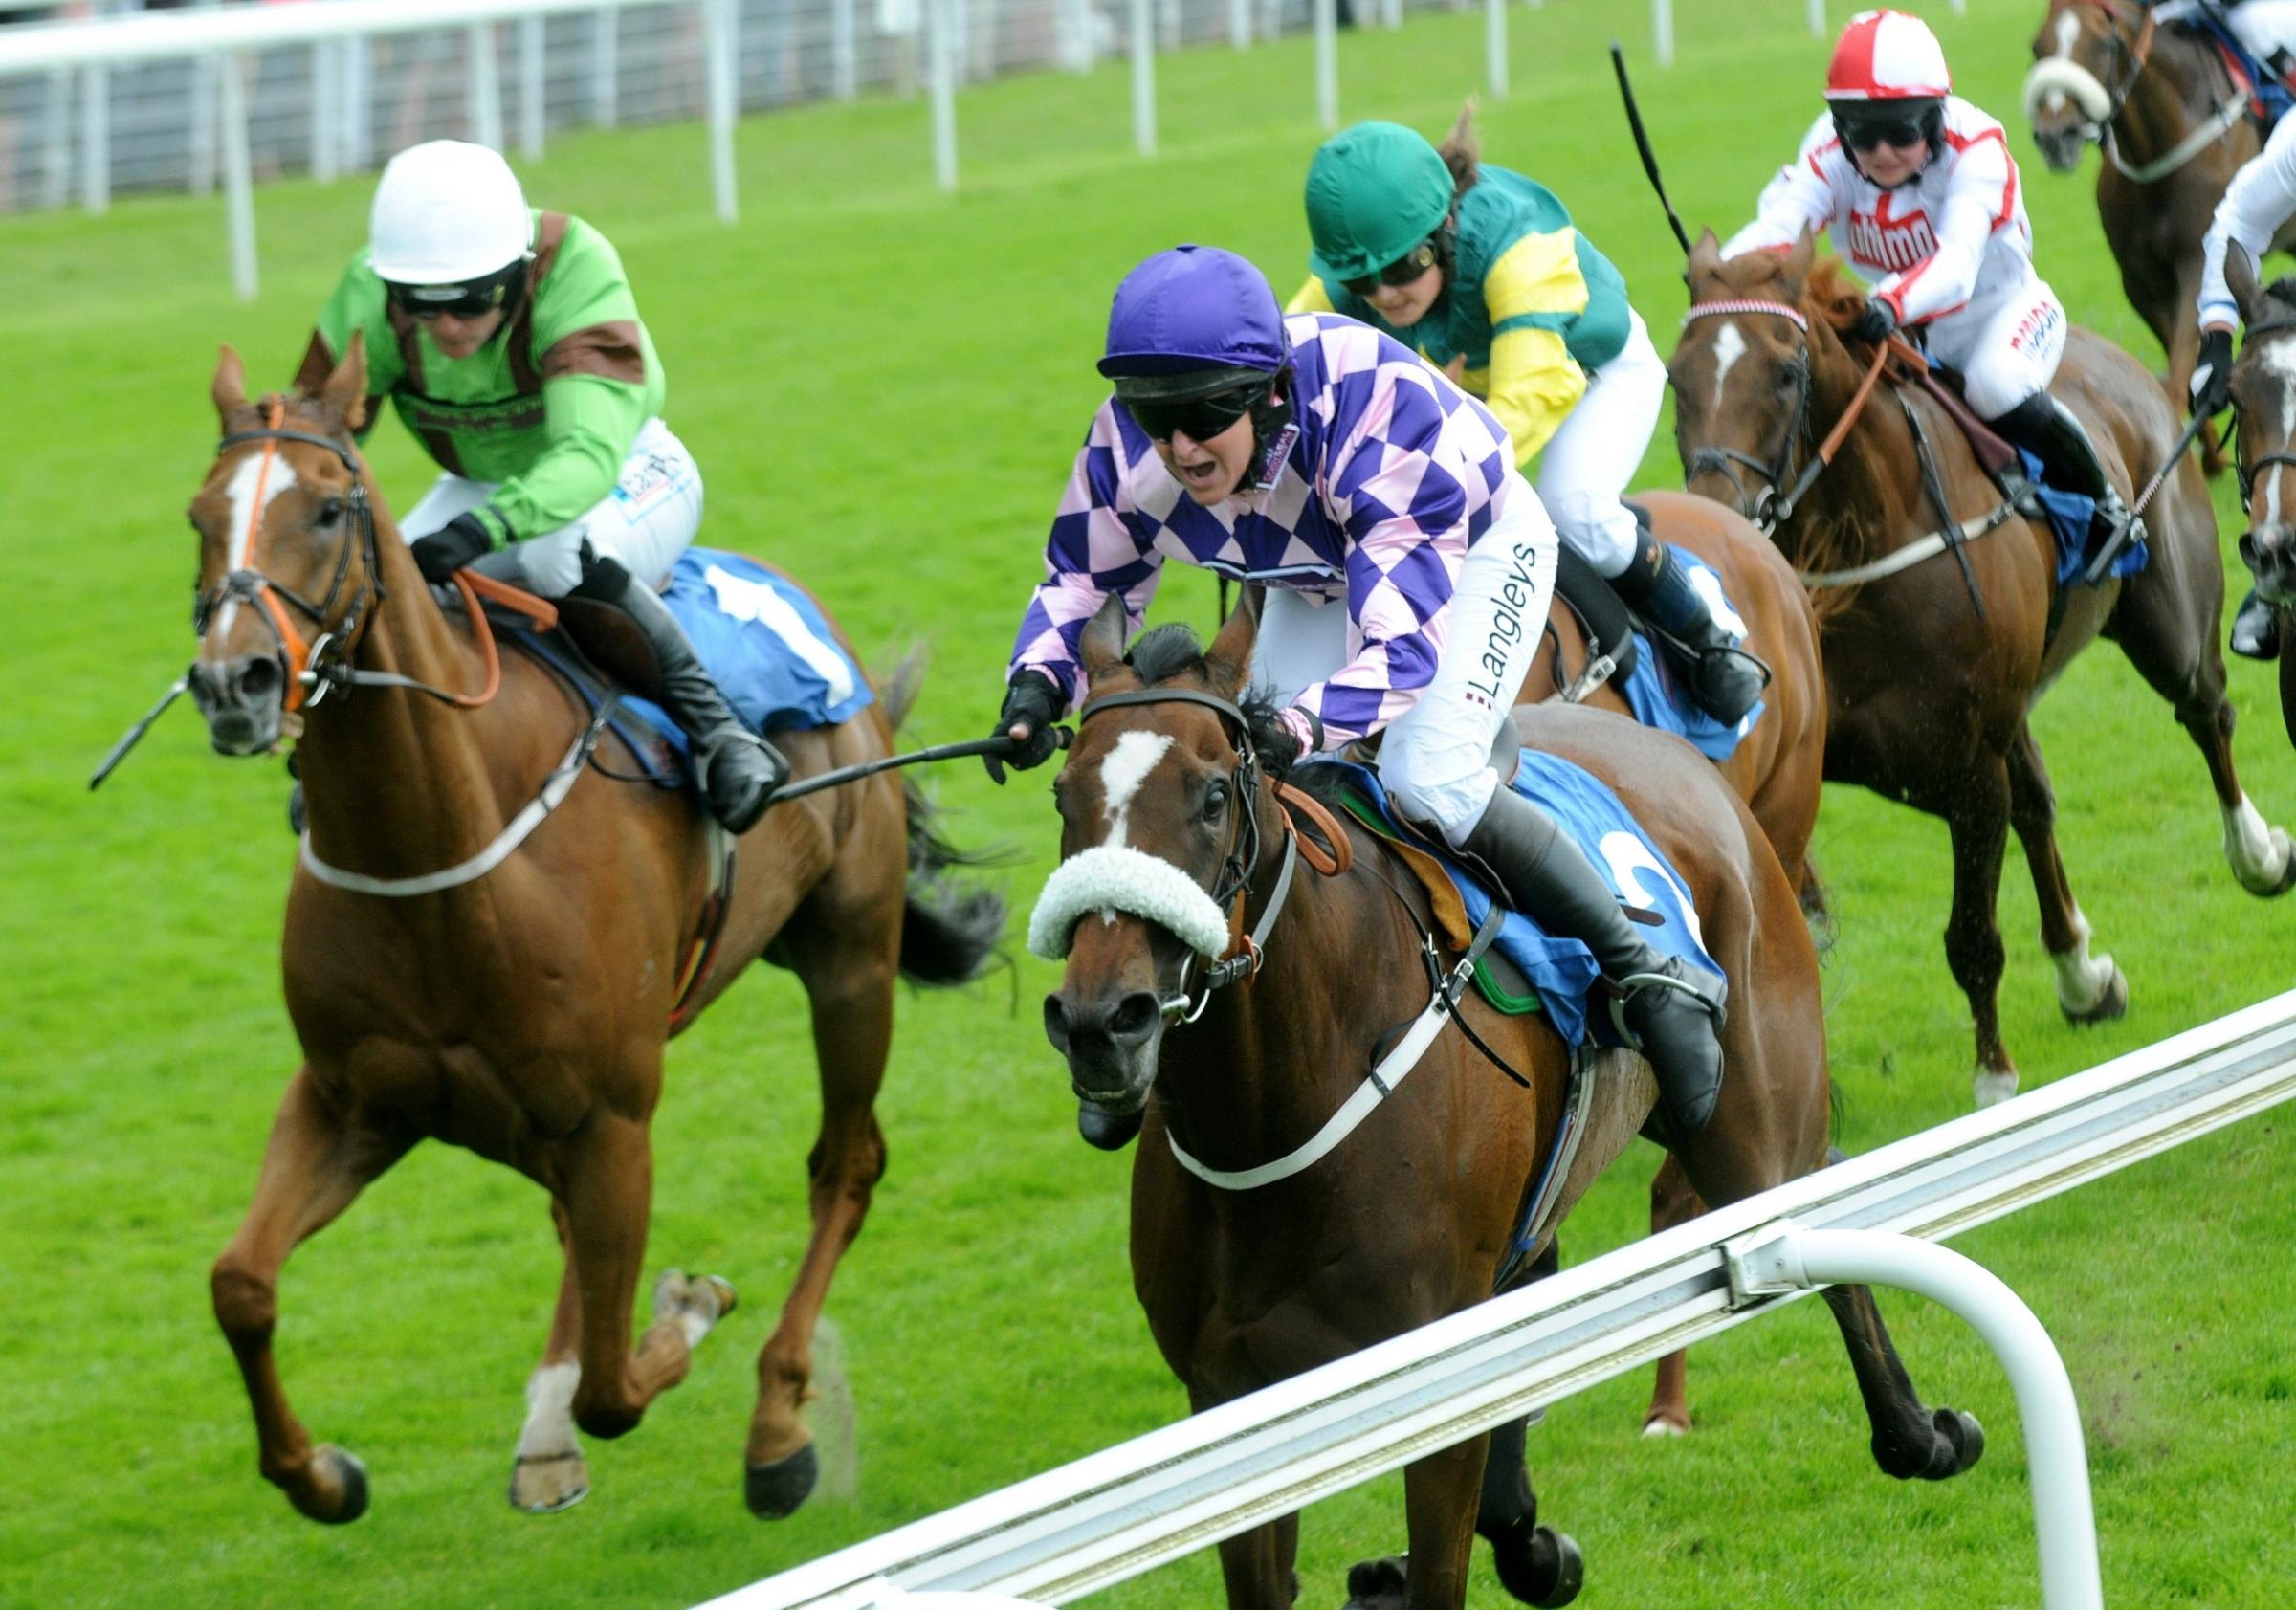 Serena Brotherton claims hat-trick of Queen Mother's Cup wins at York Racecourse